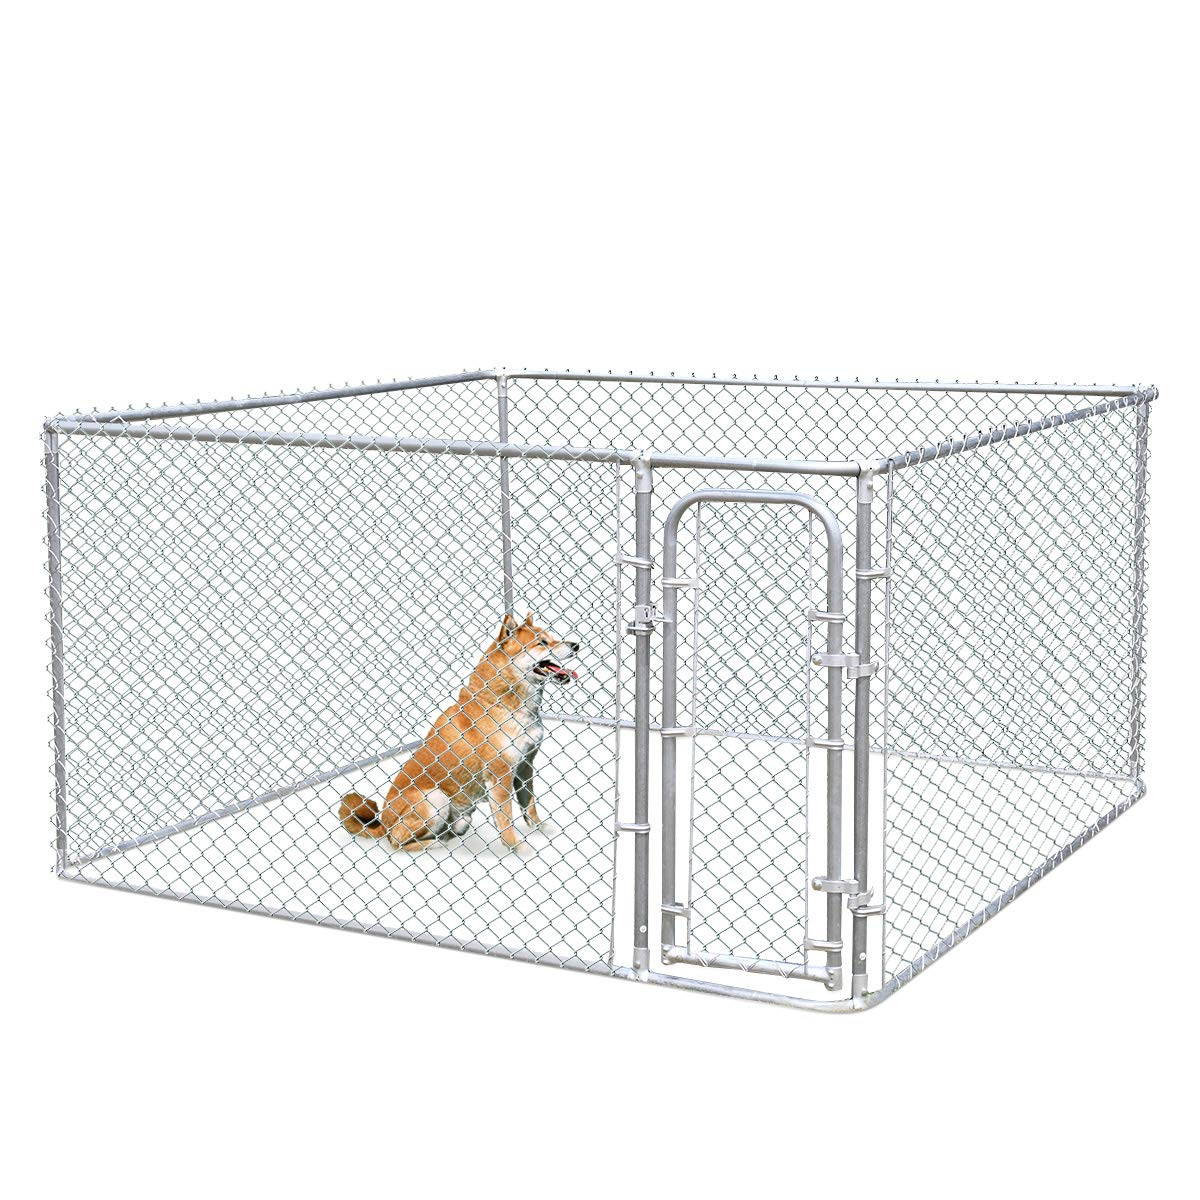 JAXPETY Foldable Metal Pet Exercise and Playpen 7.5 x 7.5 Ft Heavy Duty Outdoor Chain Link Dog Kennel Enclosure w/Door by JAXPETY